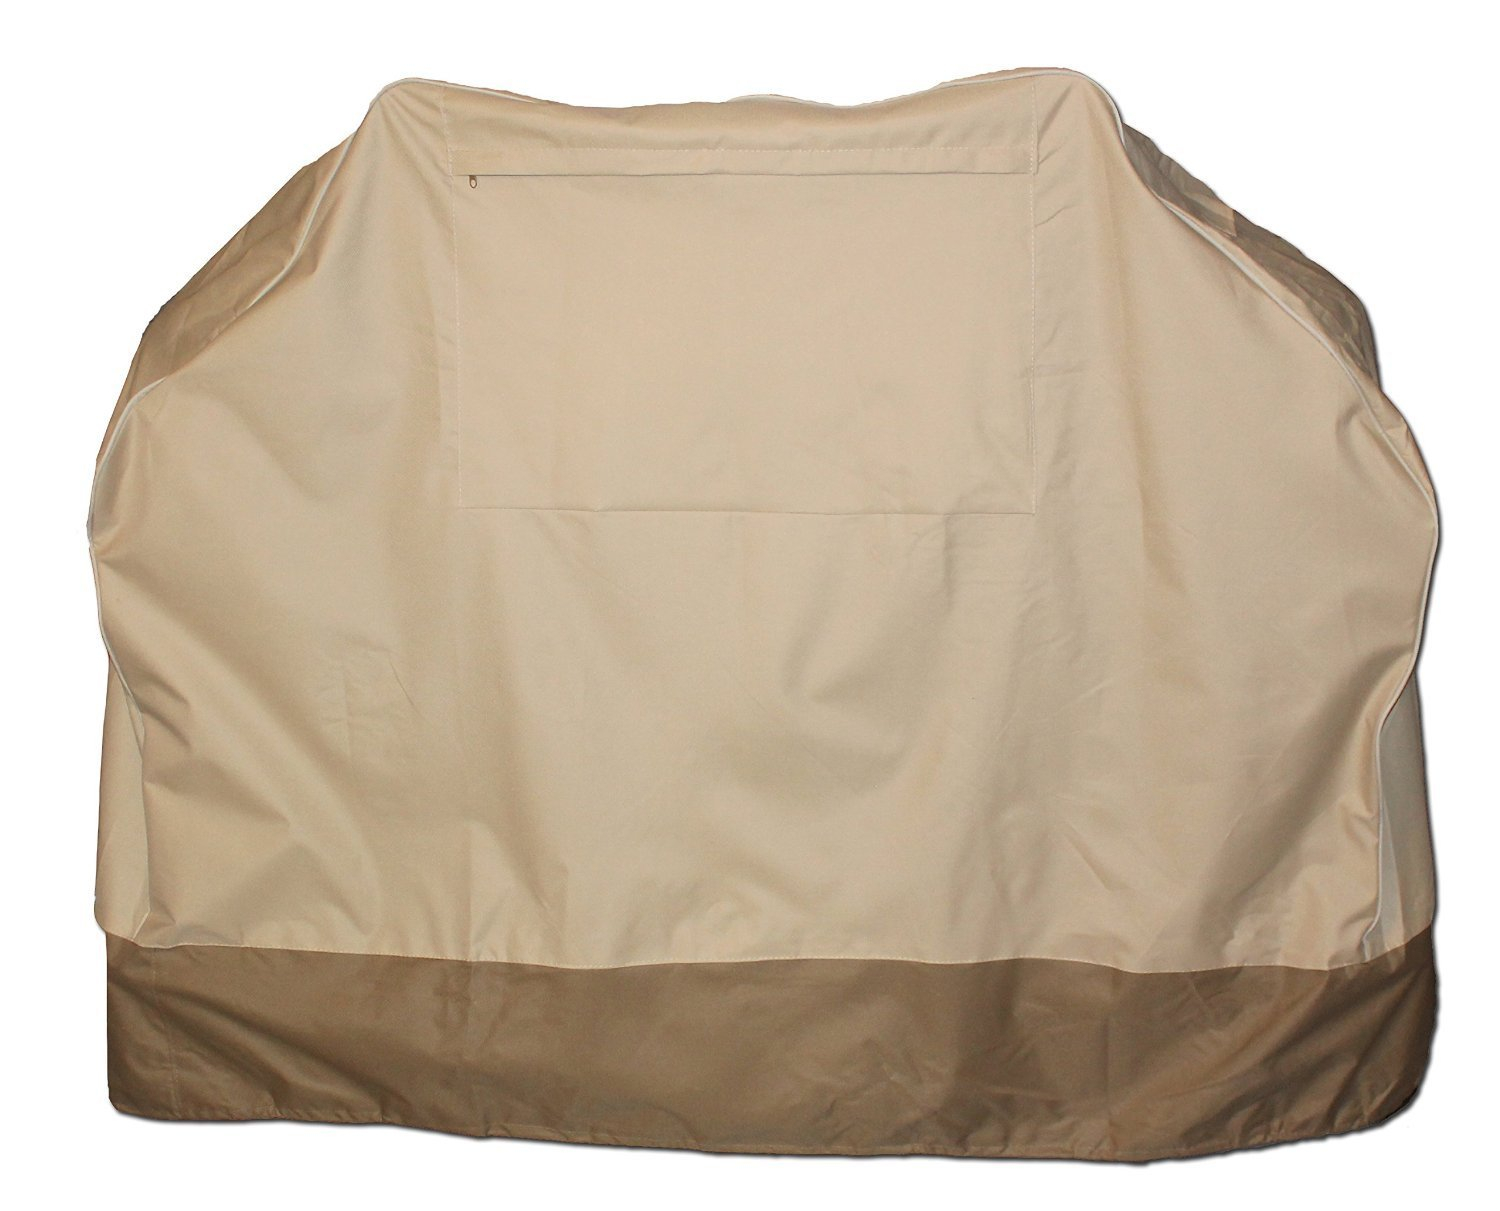 XL Cabana-Style Two Tone Waterproof BBQ Grill Cover